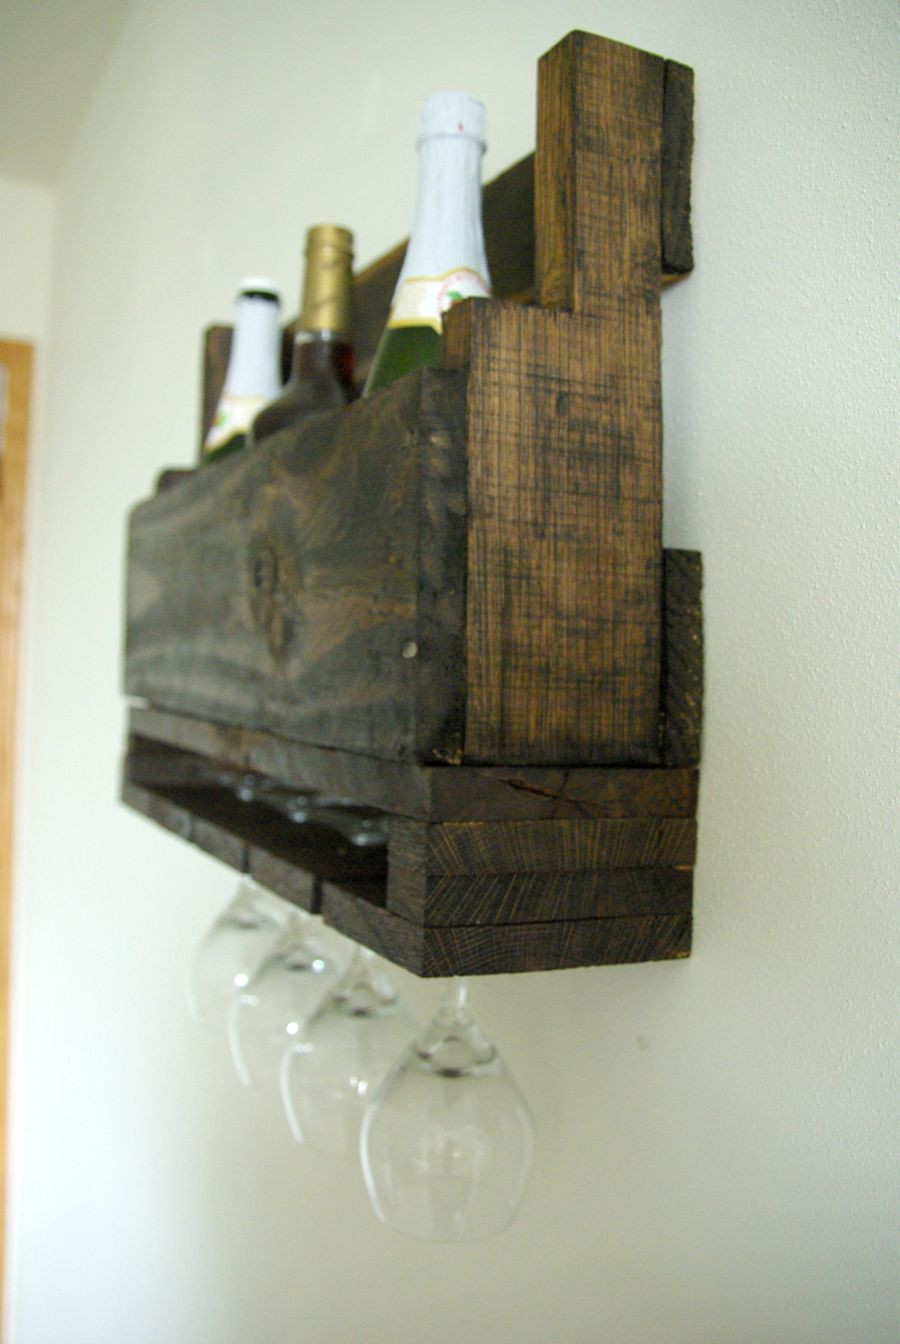 Best ideas about DIY Wine Rack Pallet . Save or Pin DIY Wall Mounted Wine Racks Made Pallets Now.